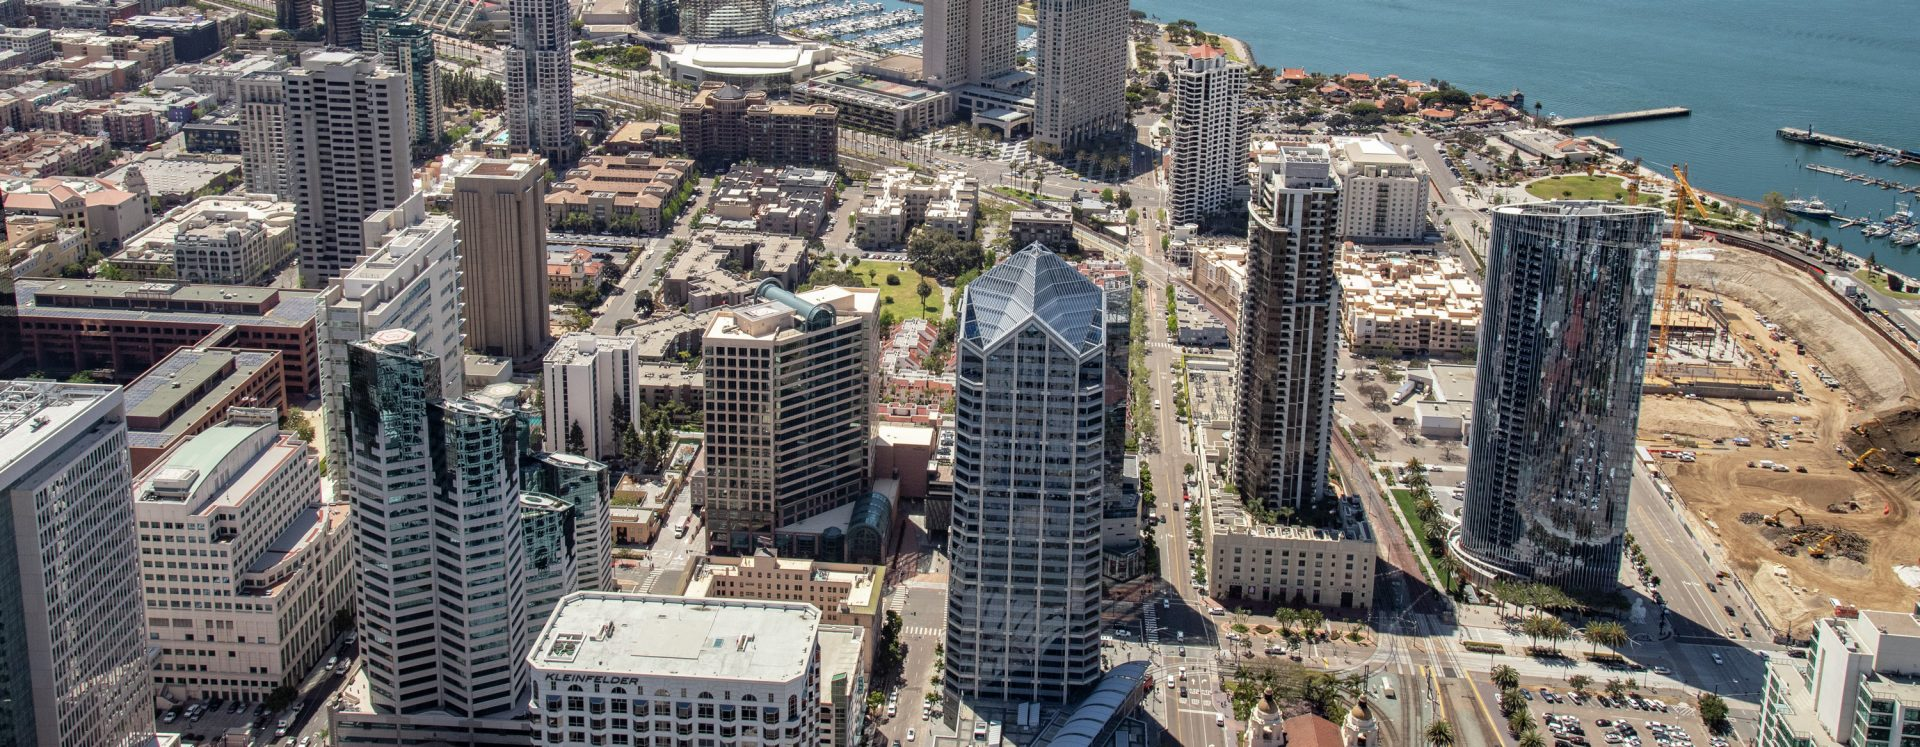 Aerial view of Downtown San Diego.